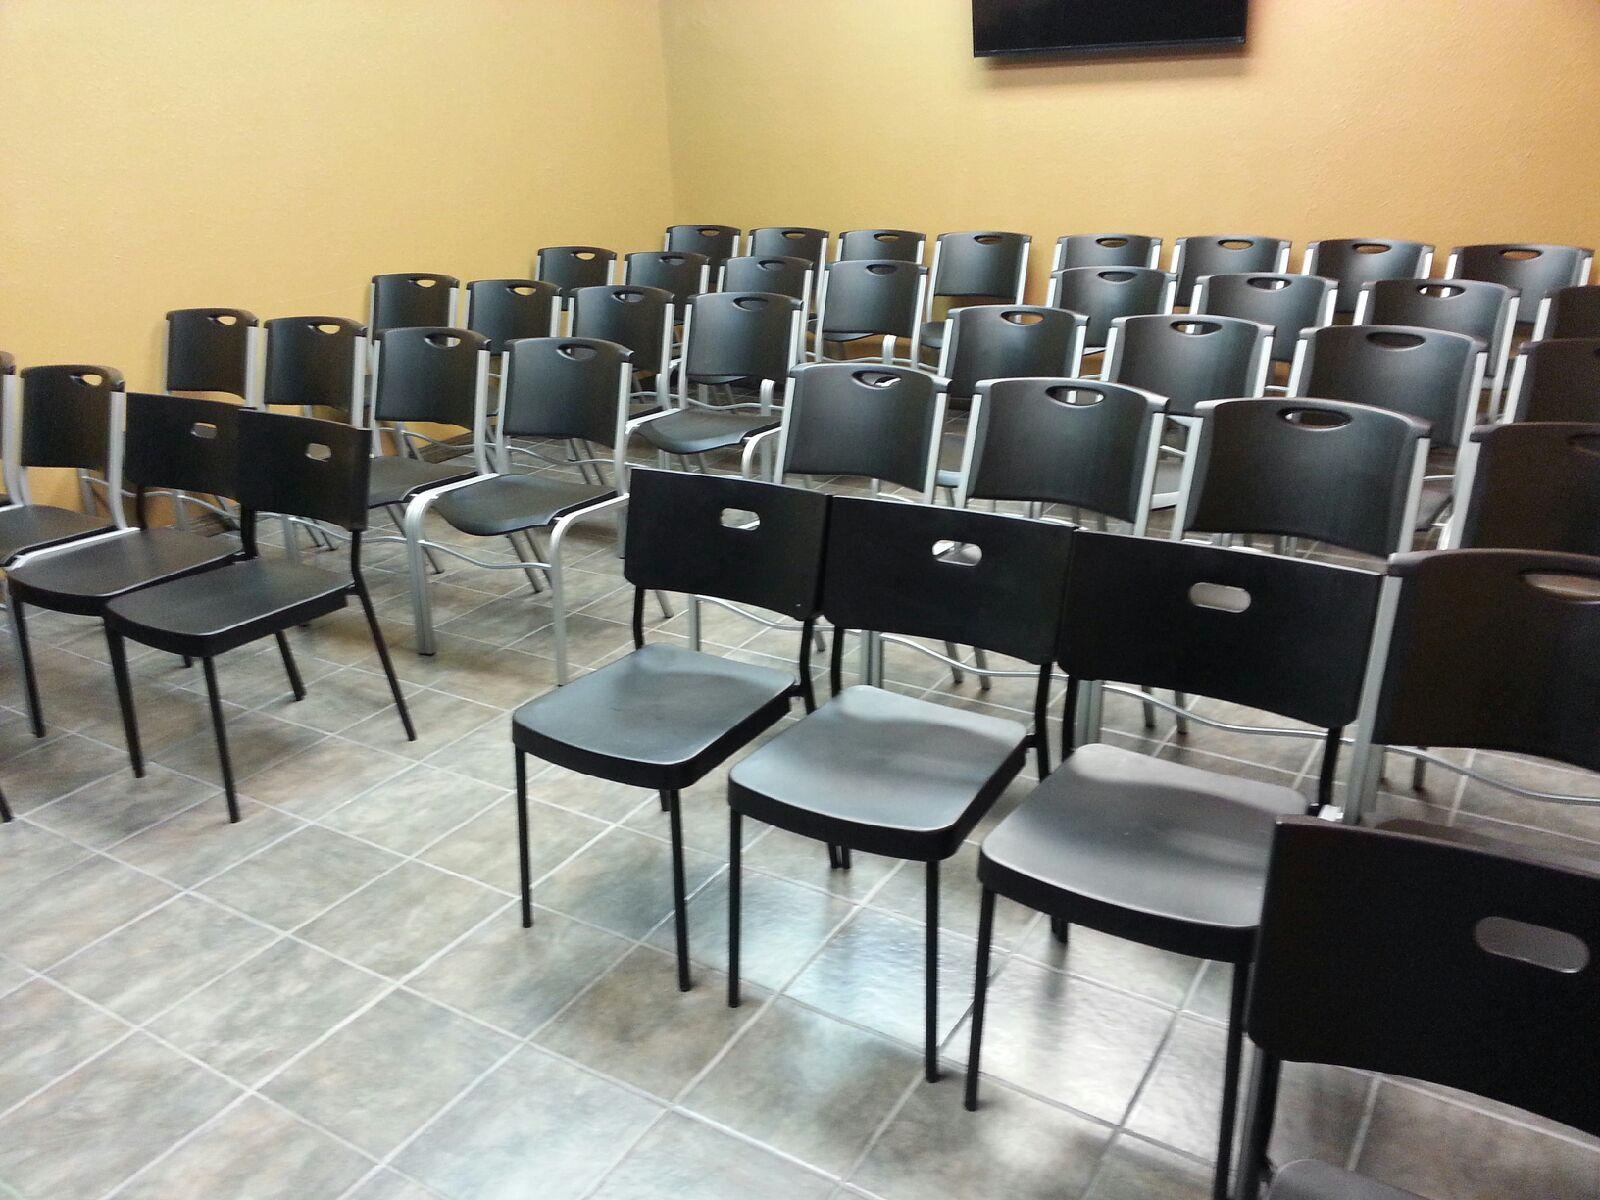 Go Natural 24/7 Business Training Room - Go Natural 247 Training Room